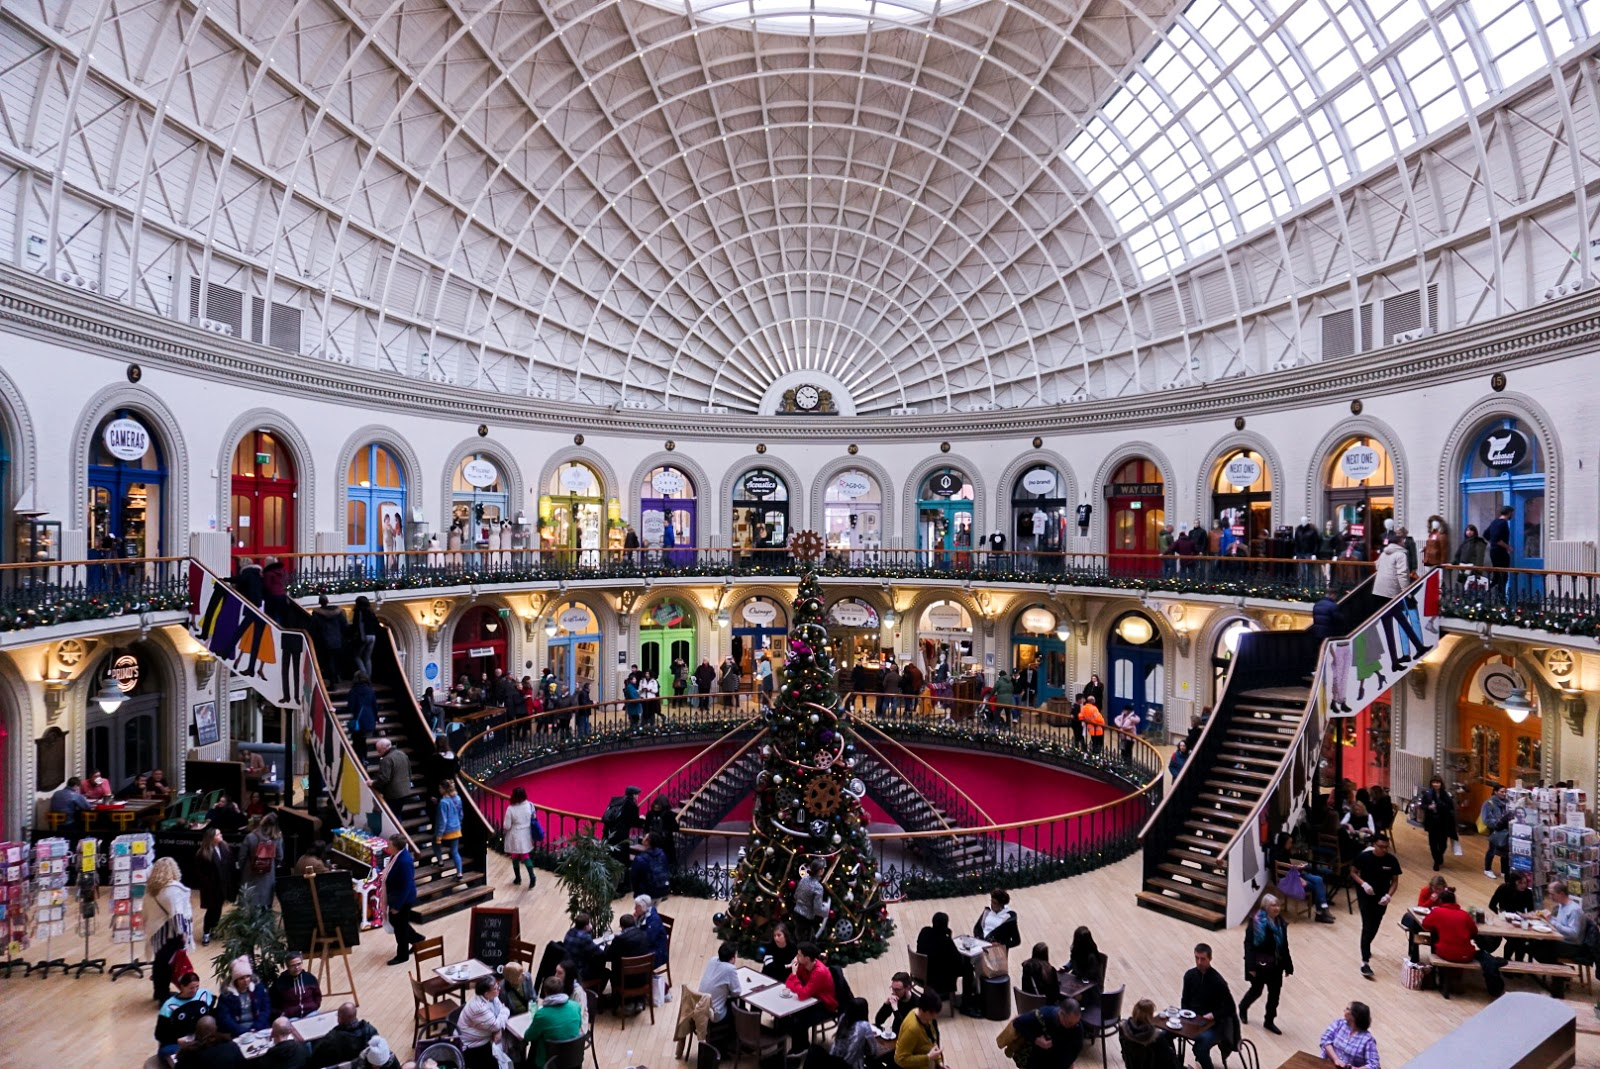 leeds corn exchange: travel guide: 12 hours in Leeds